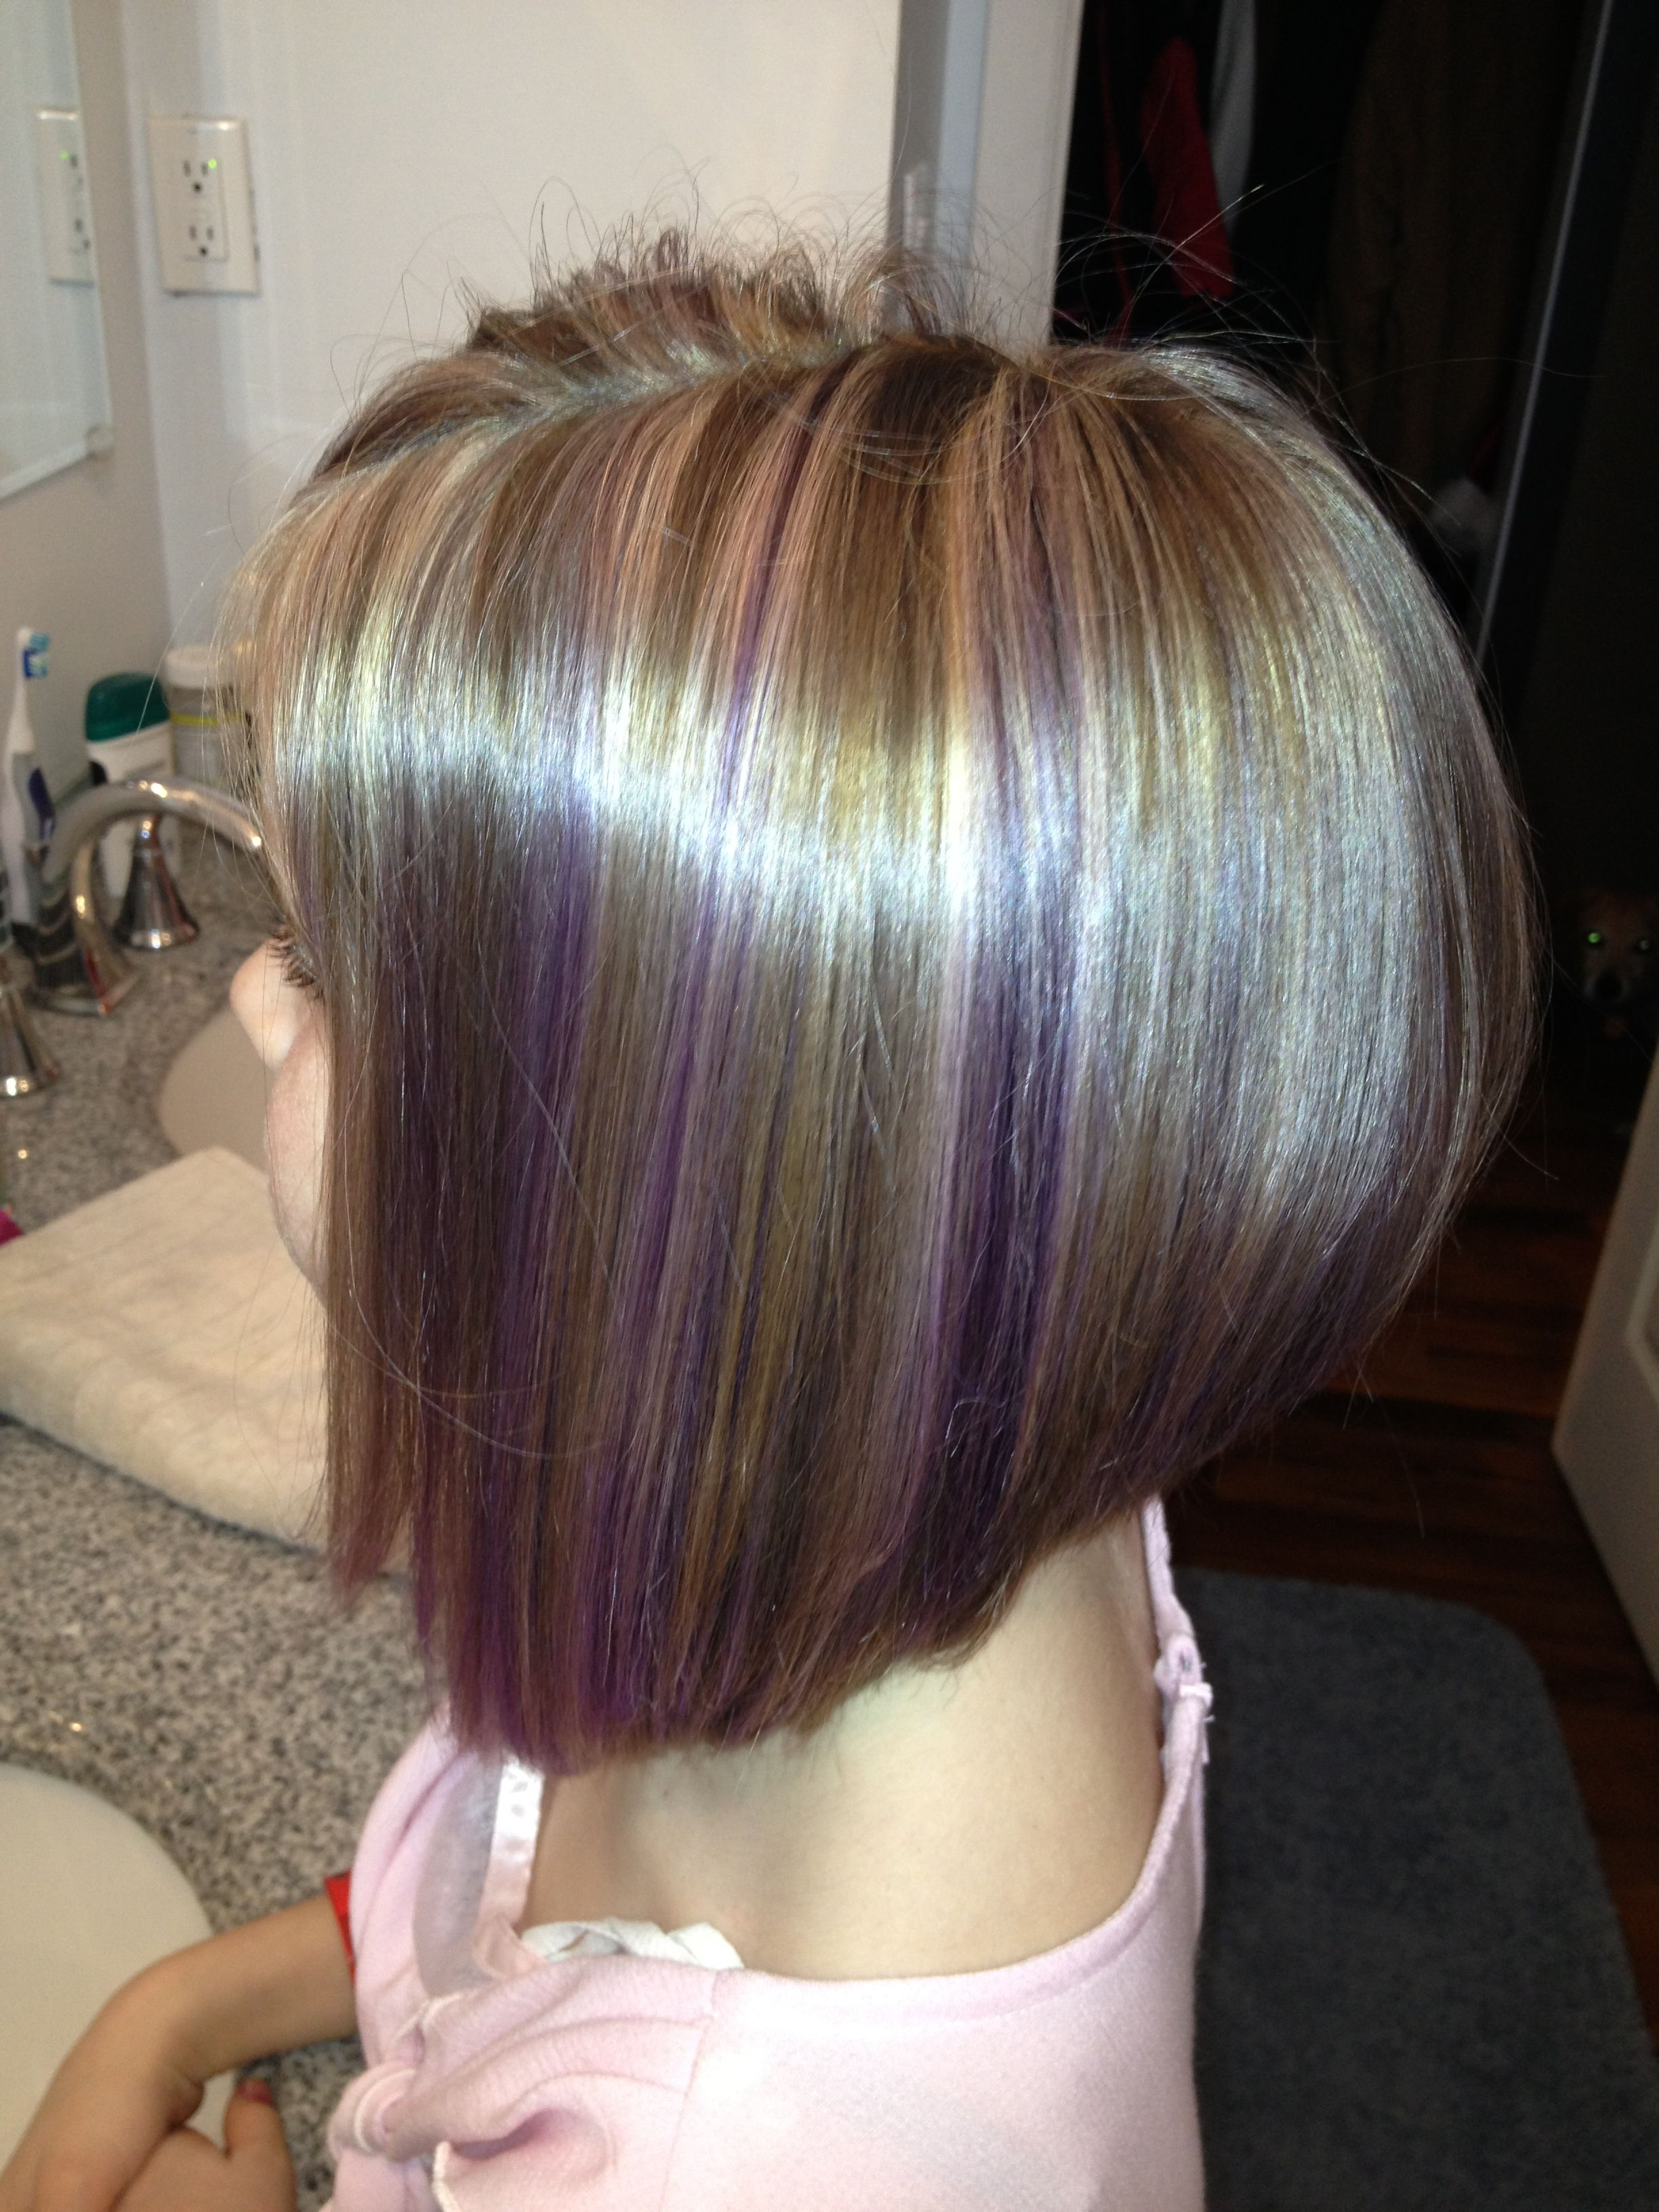 Pin by Trina Ickes on Hair | Pinterest